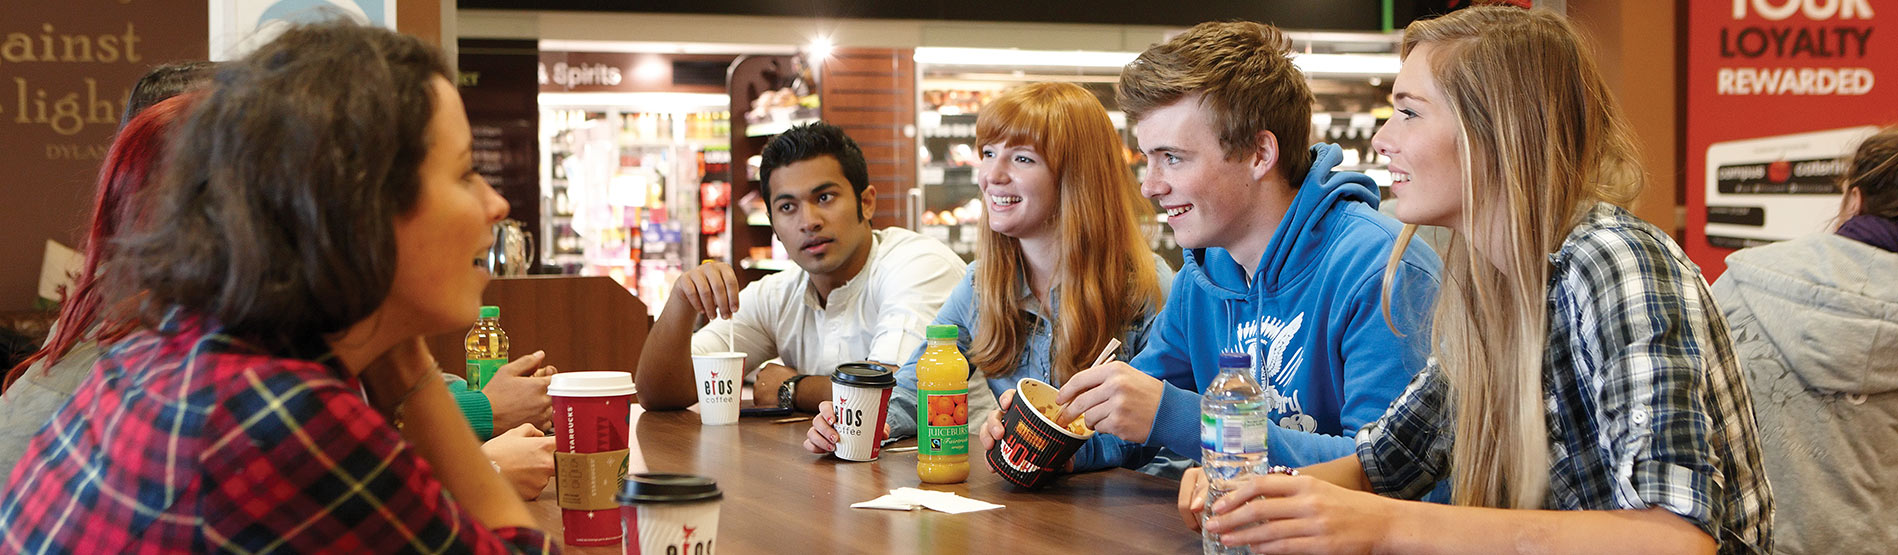 Students socialising during lunch in an on-campus cafe.